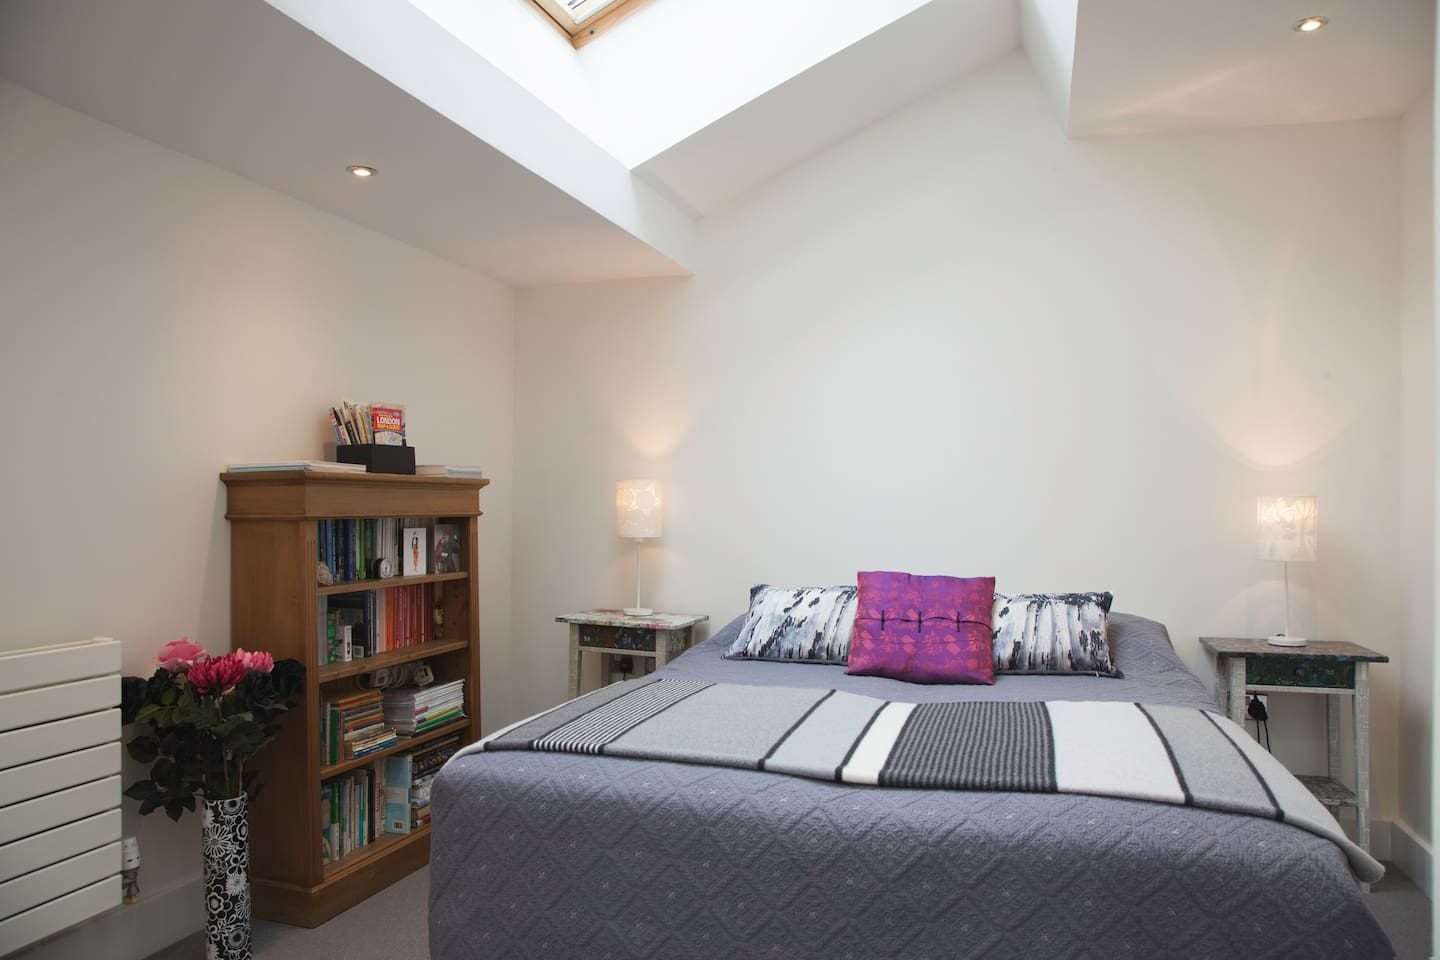 the guest bedroom: light and spacious with a comfortable double bed